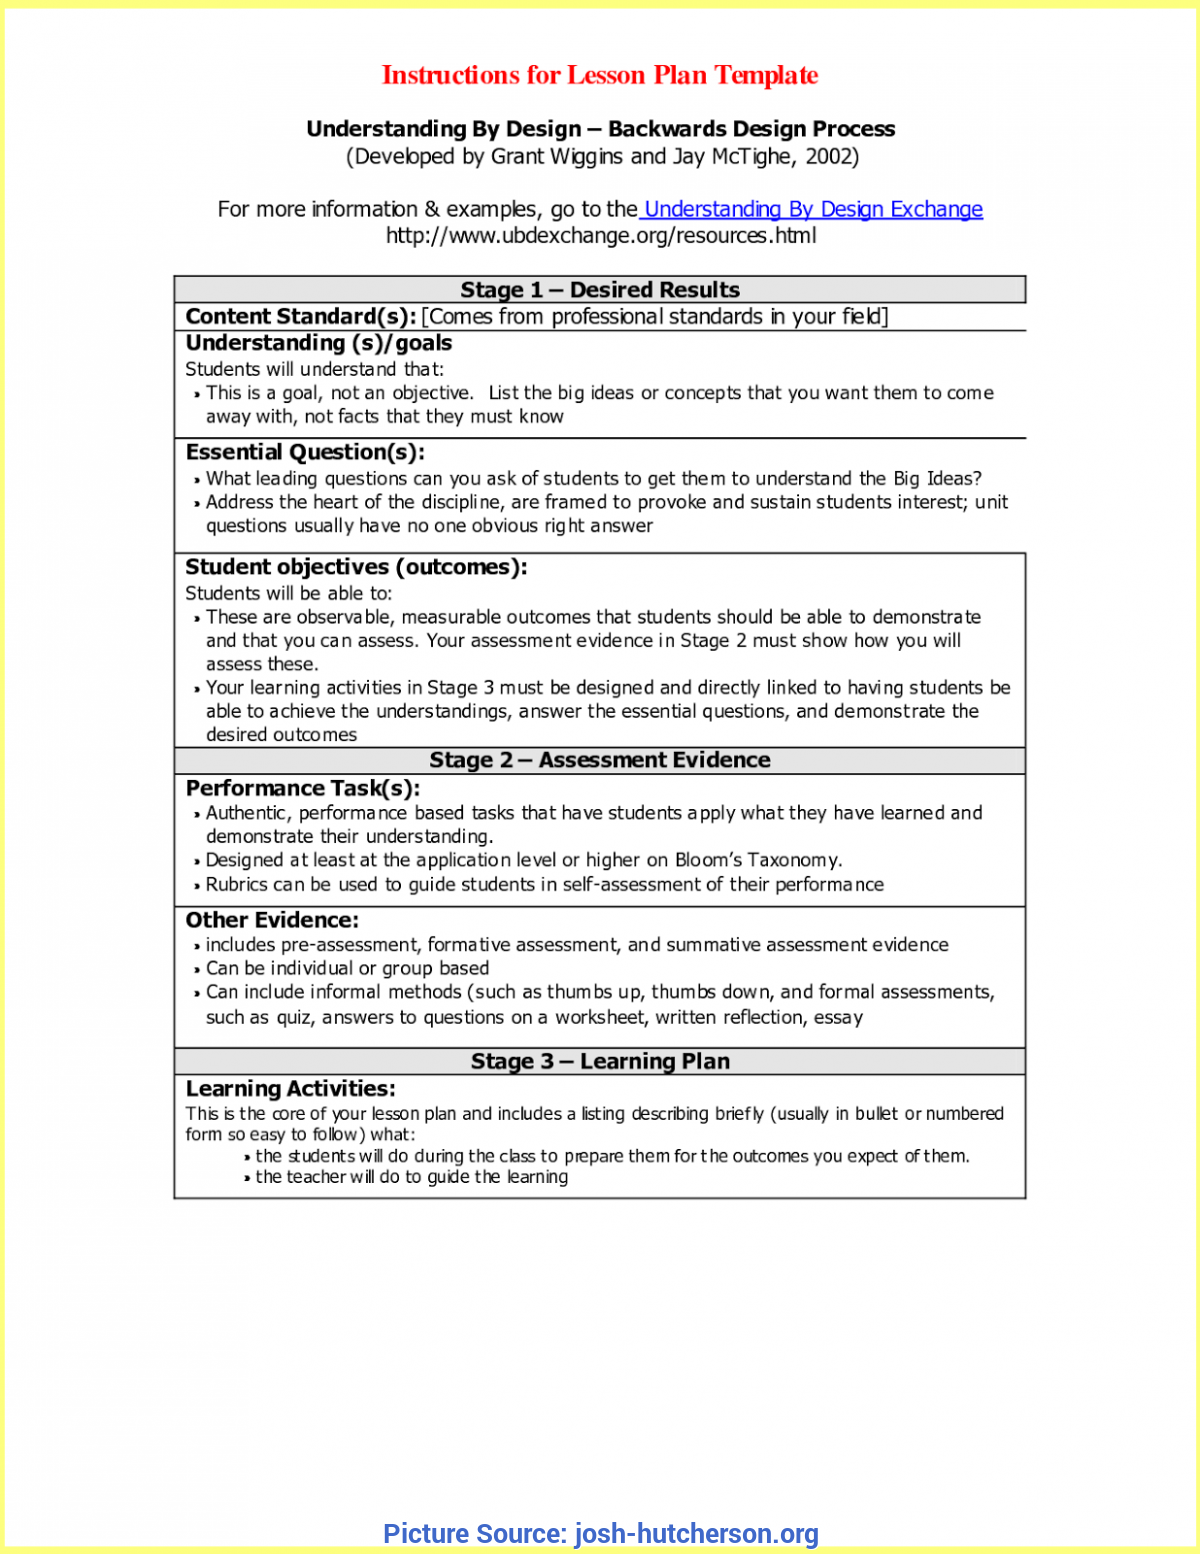 Special Lesson Plans Samples For Teachers Inspirational Pe Lesson Plan Template | Josh-Hutche